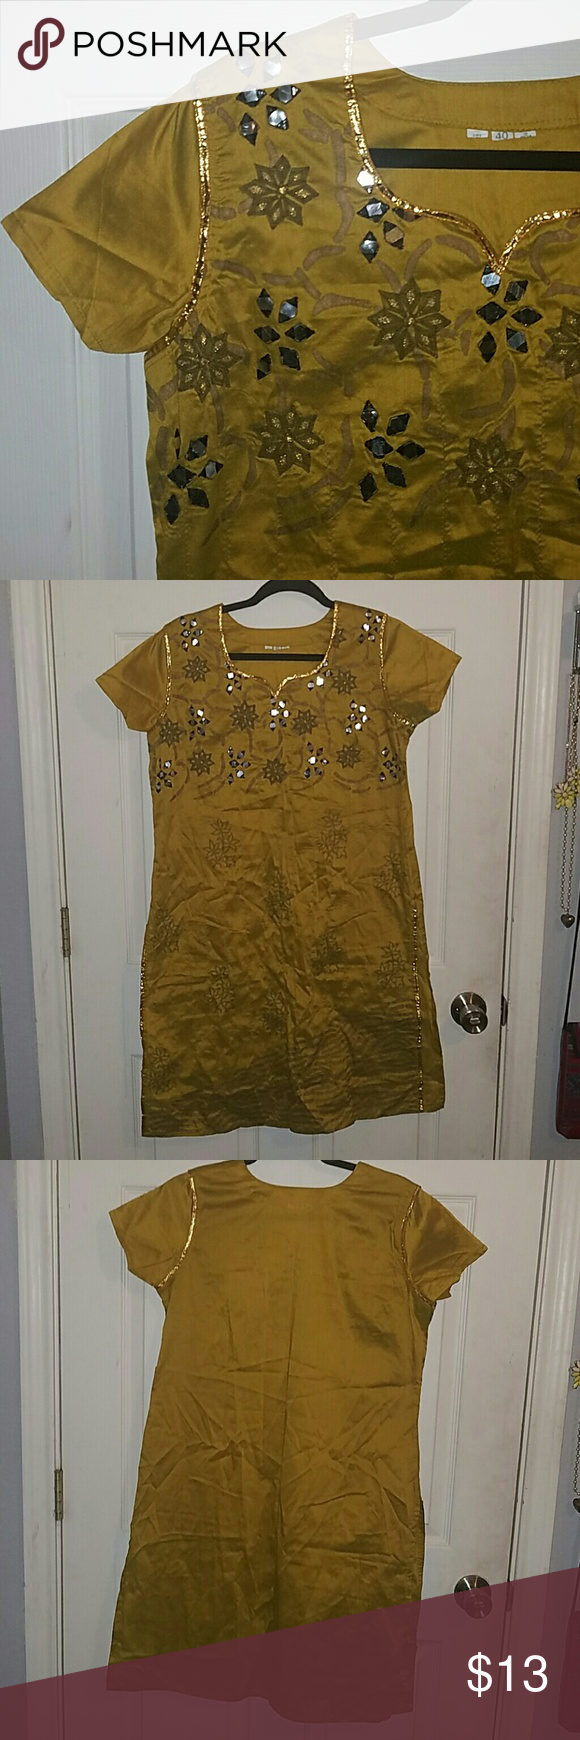 "Kurti Blouse Beautiful Kurti Blouse with sewn openings on sides. Gold/Yellow with embroidered stich design. Nice with some leggings or skinny jeans. Made in India, size 40. Length: 37.5"". Bust: 18.5"". Tops Tunics"